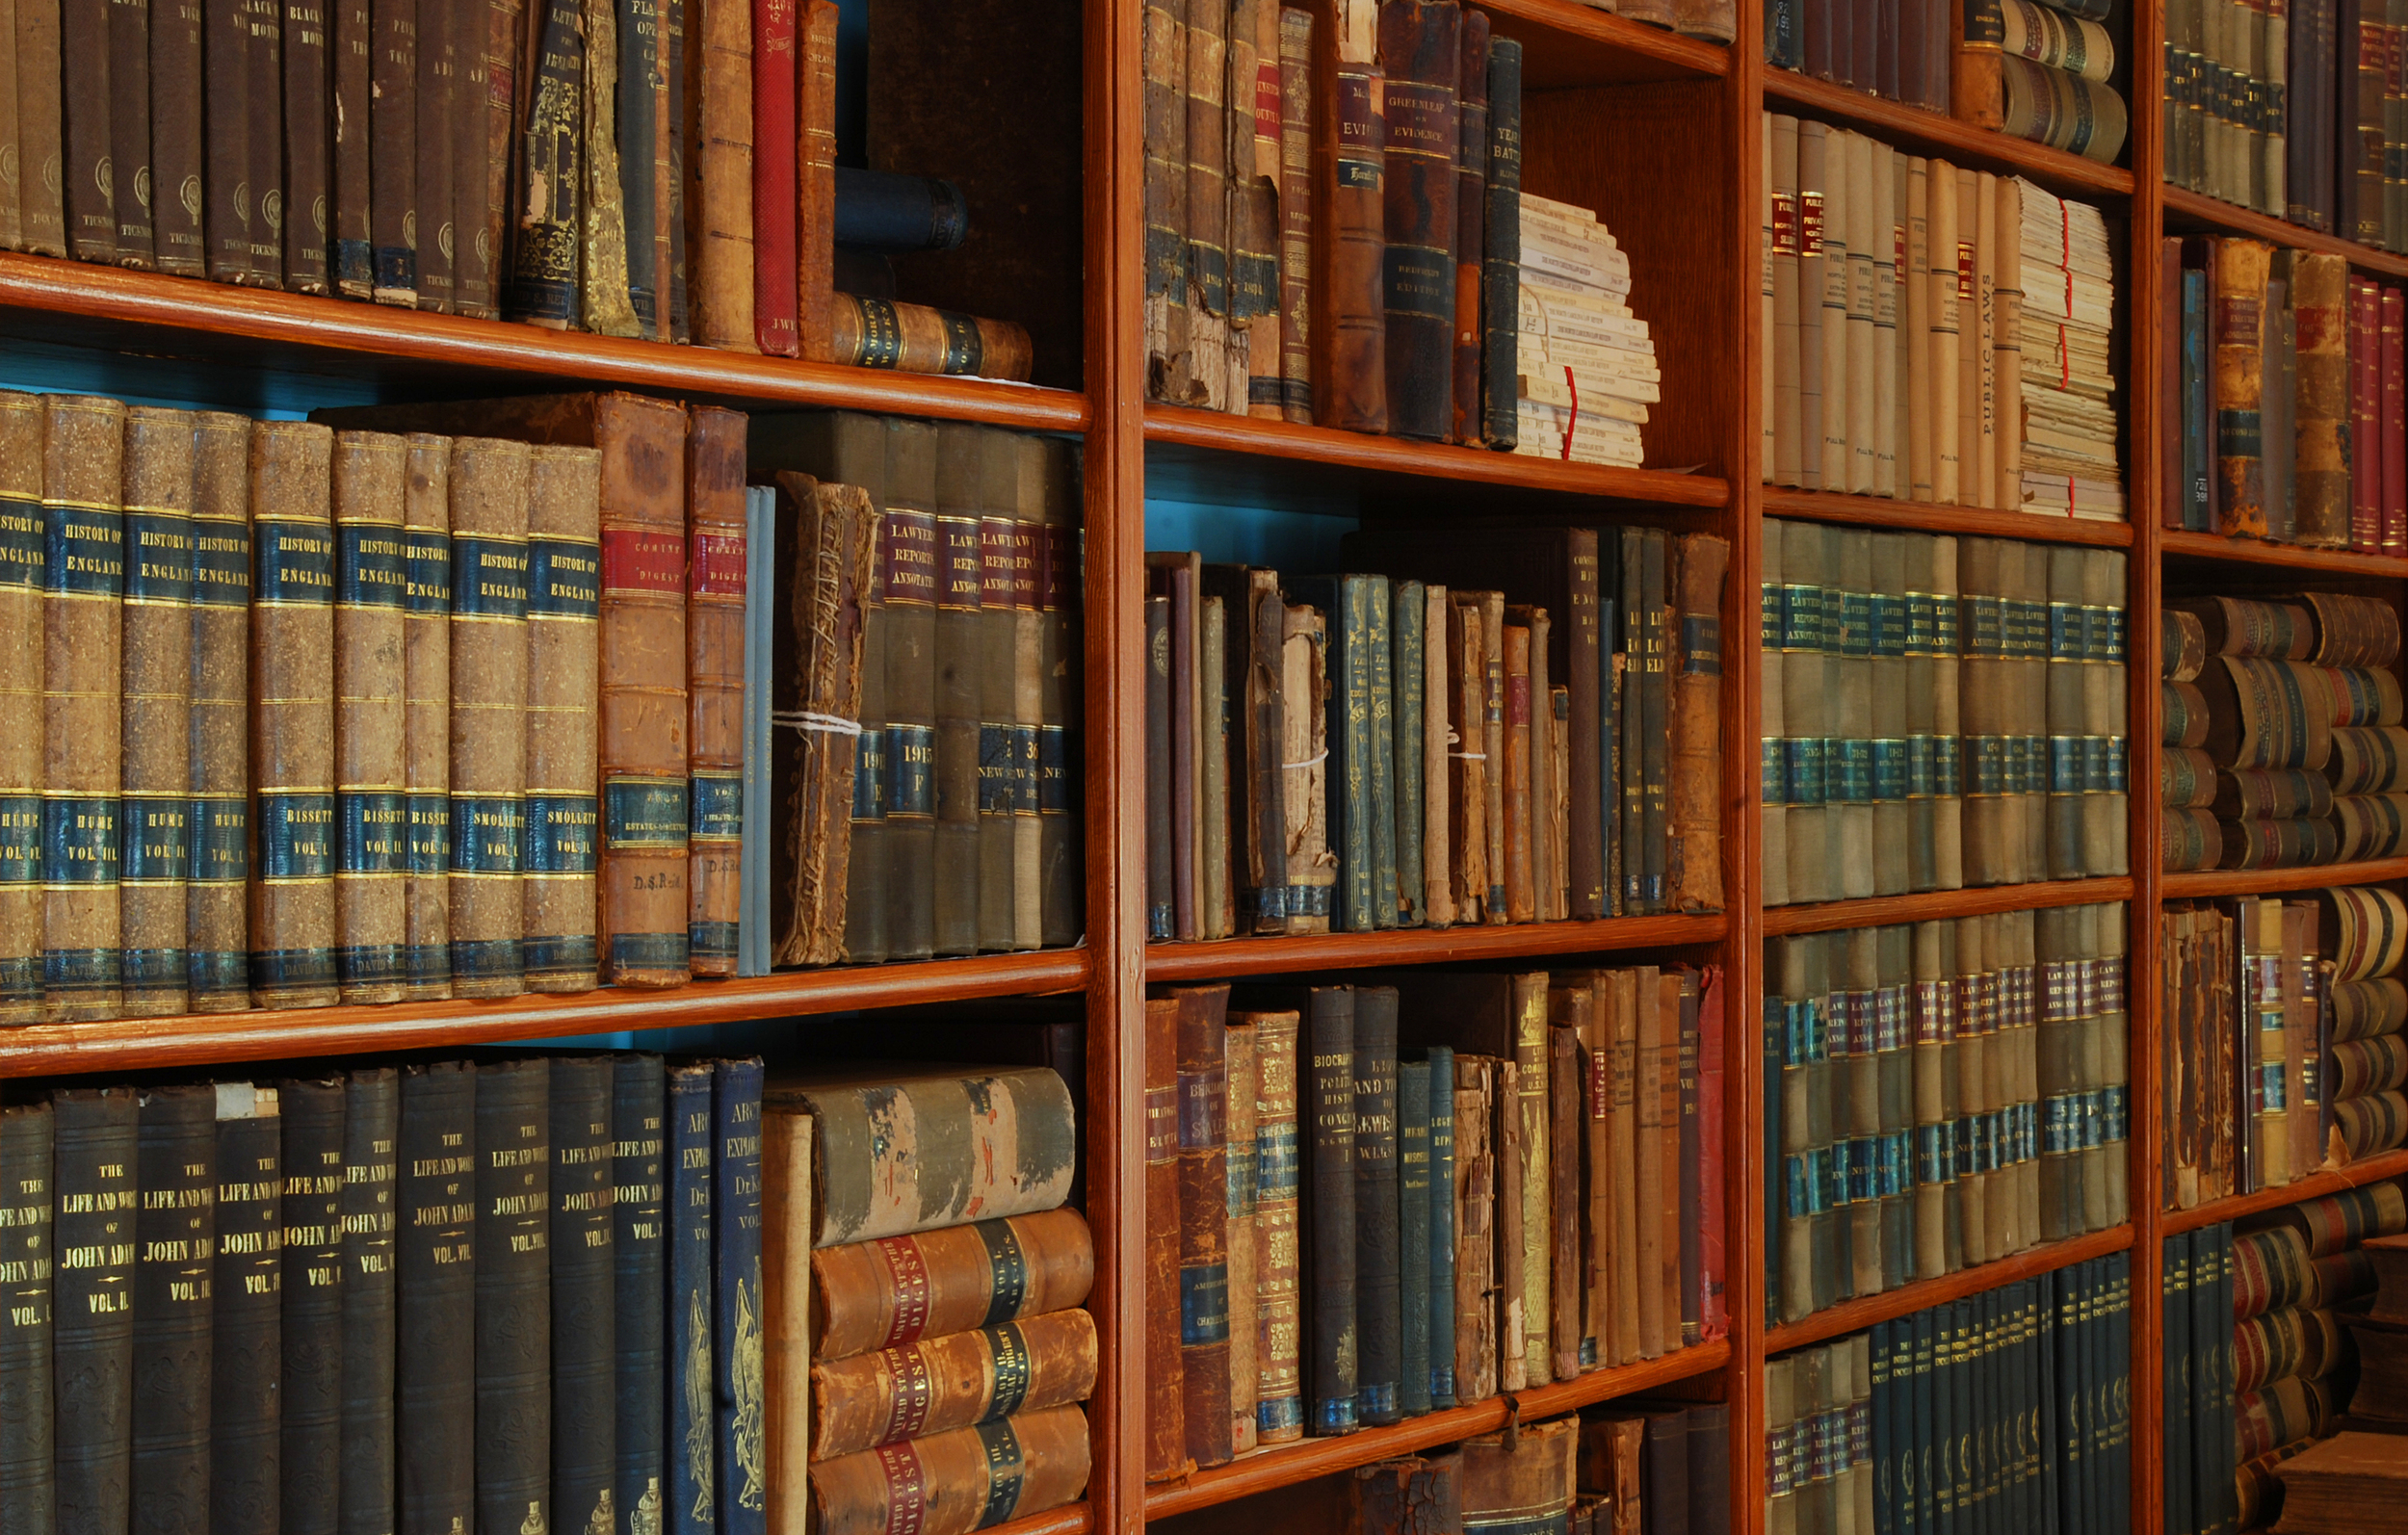 Brought to you from the link library of the Gentleman Stationer, photo courtesy of Barta IV (via Flickr  creative commons .